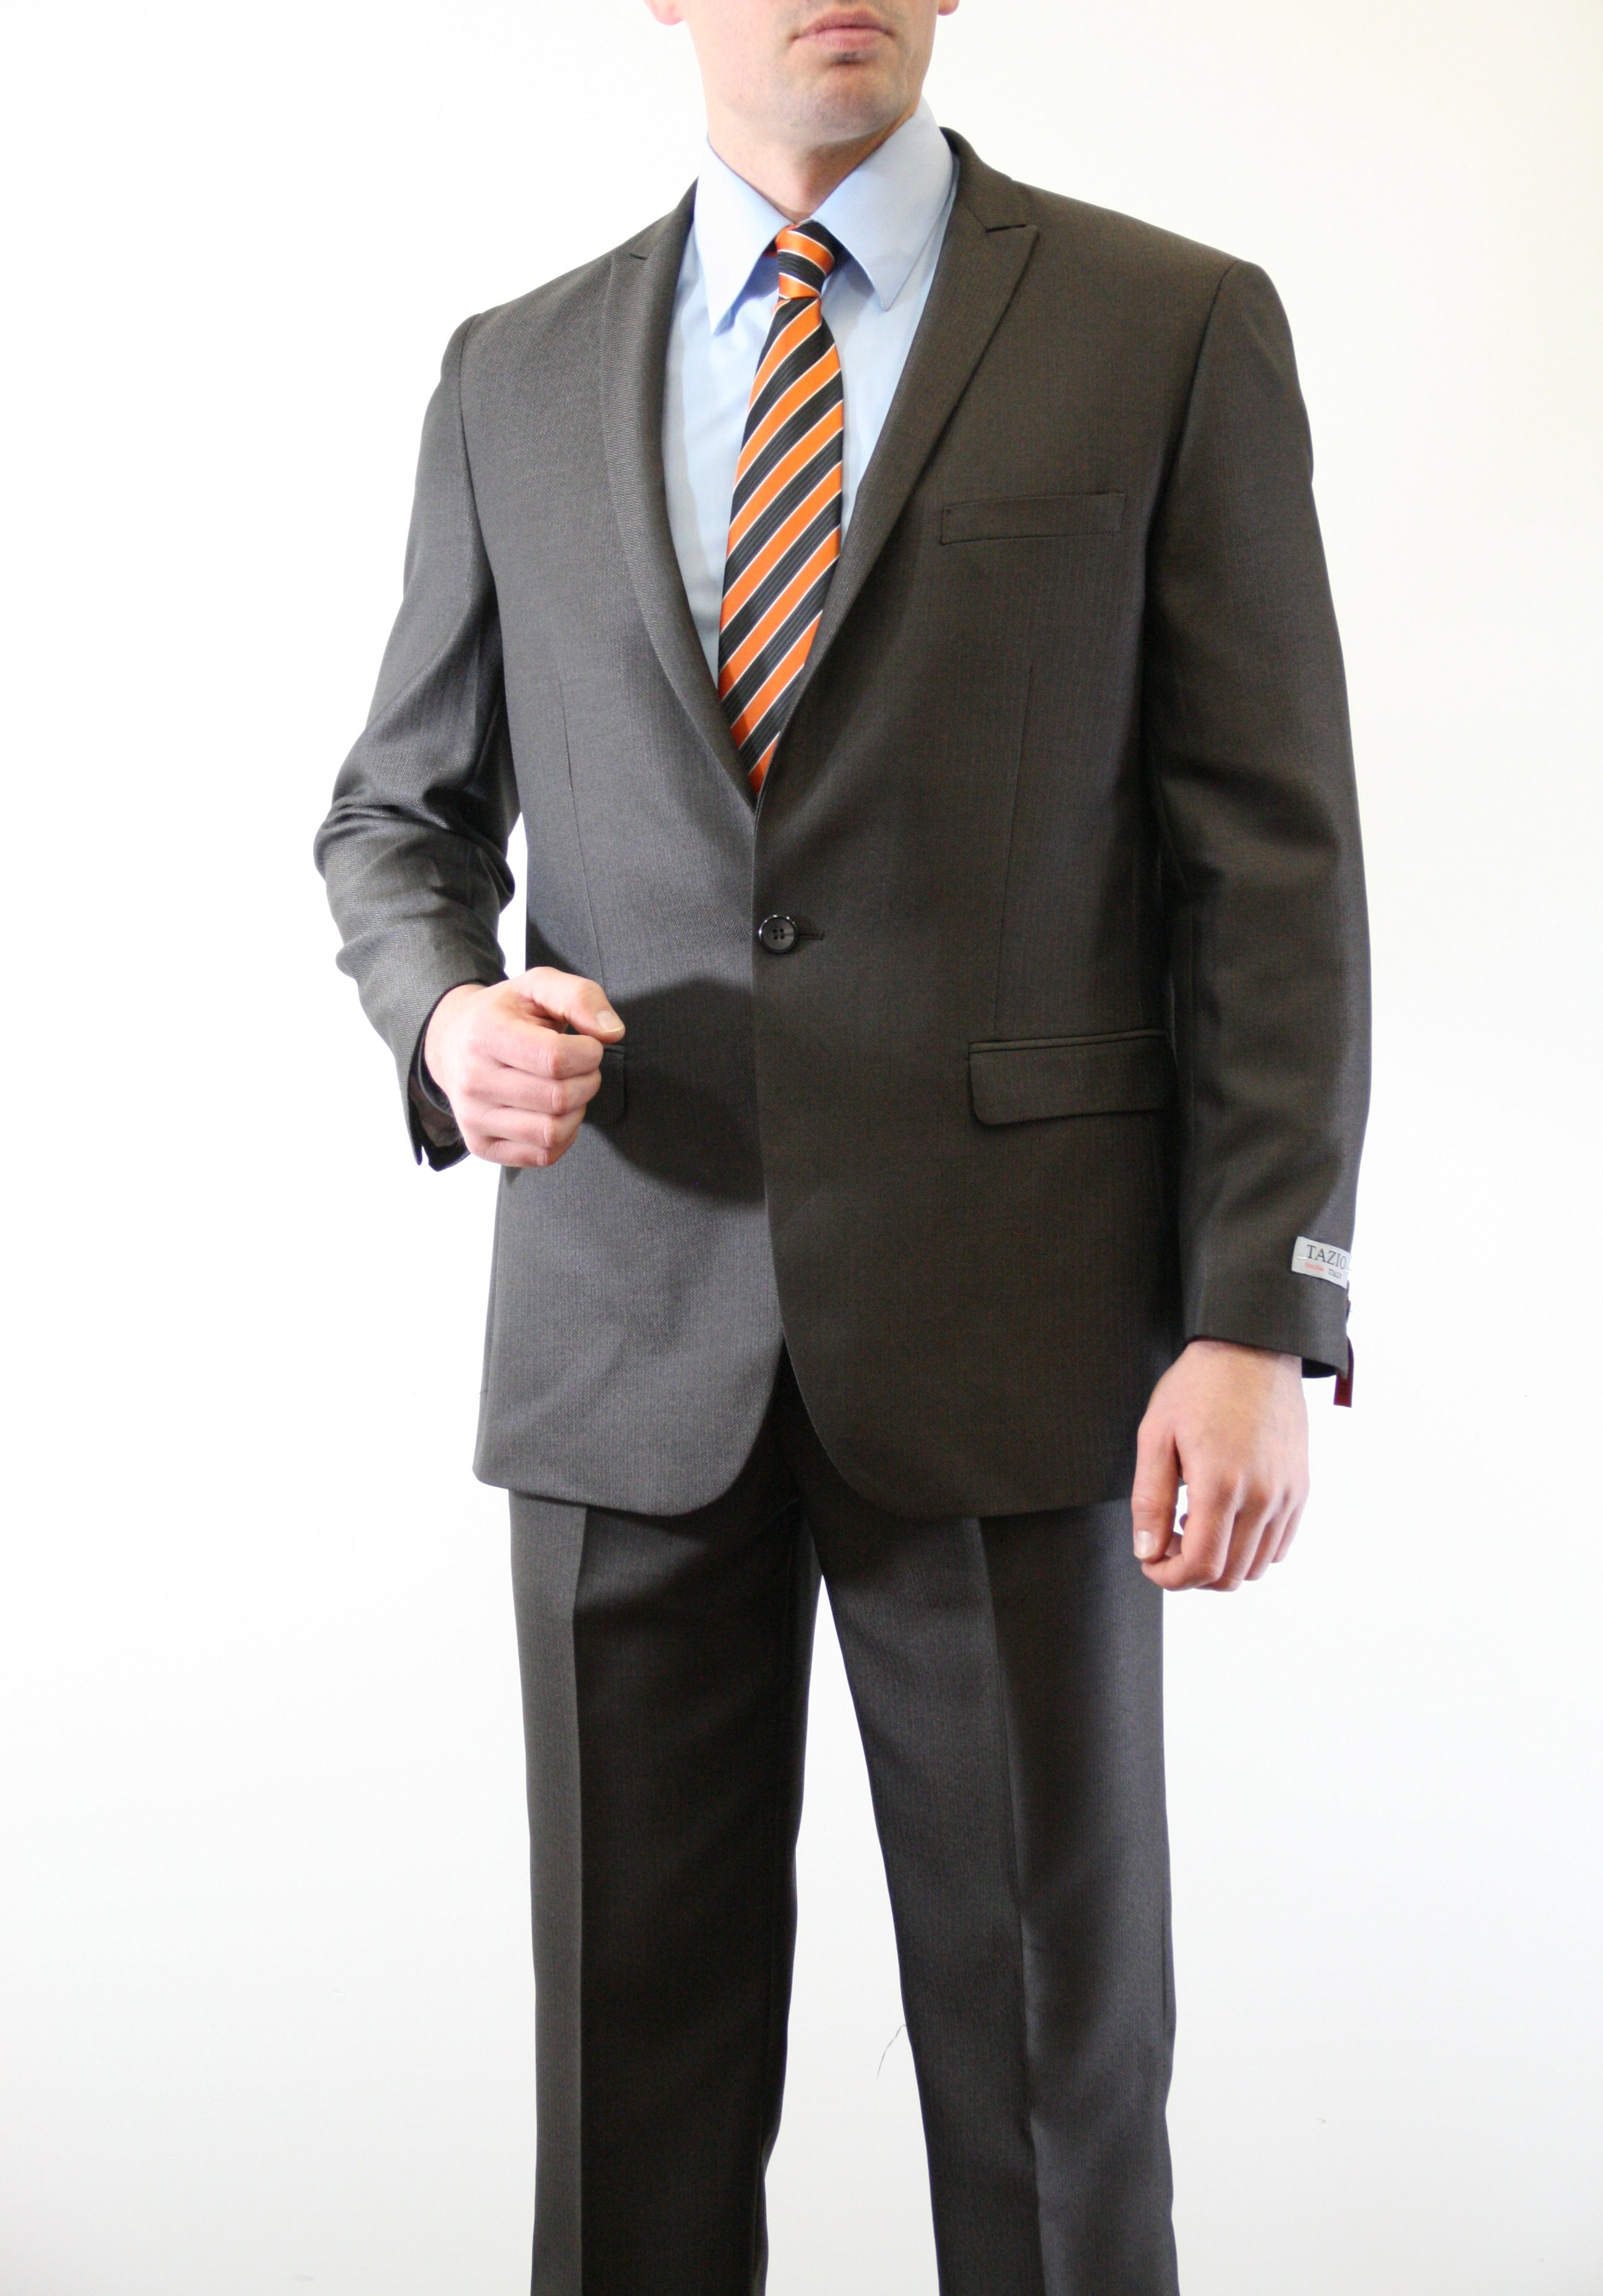 Brown Suit For Men Formal Suits For All Ocassions M192S-04